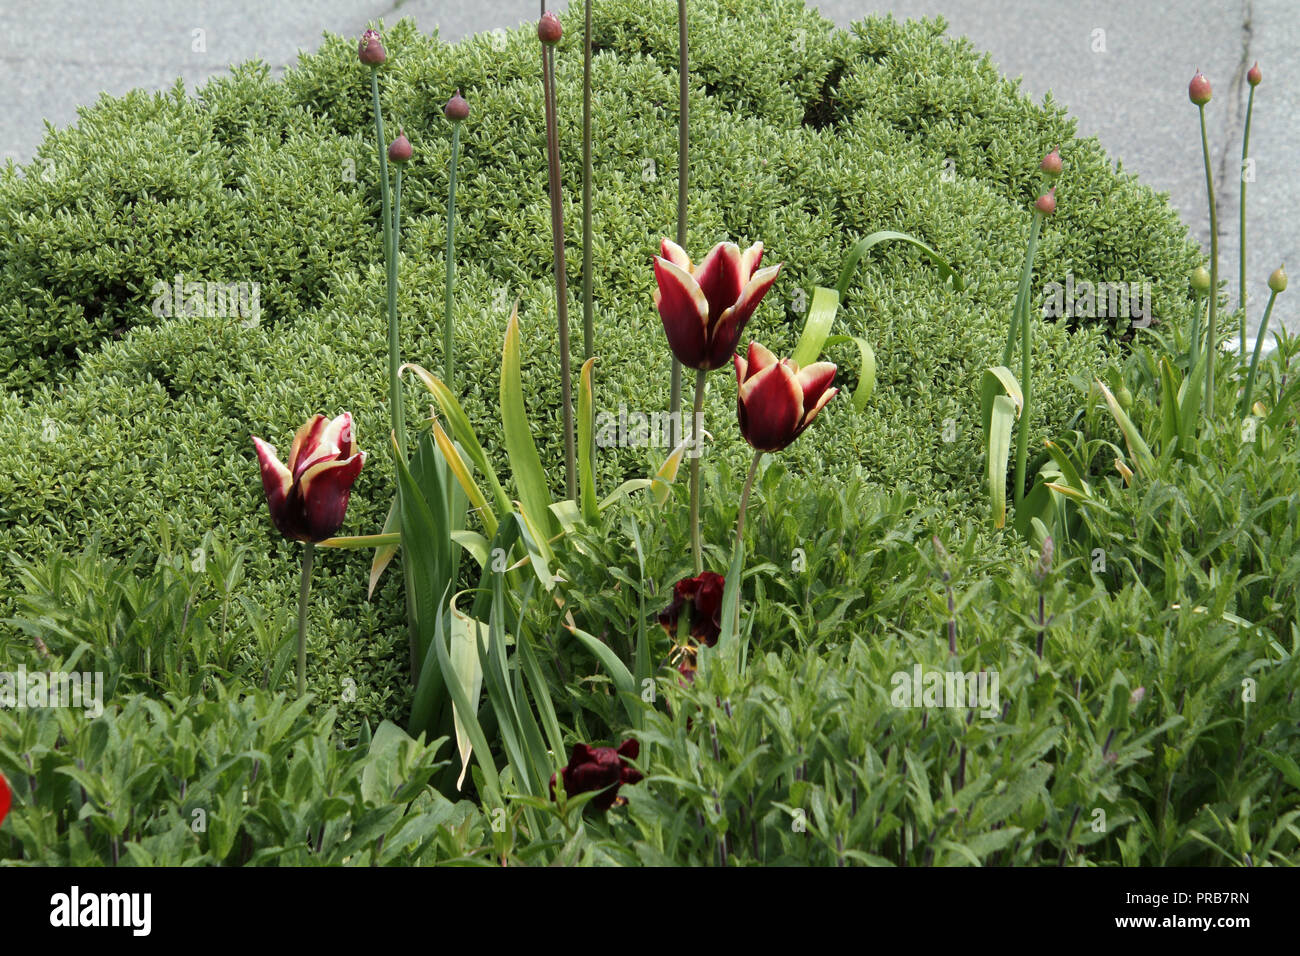 Red Flowers With White Yellow Tips In A Bed Of Green Plants Stock